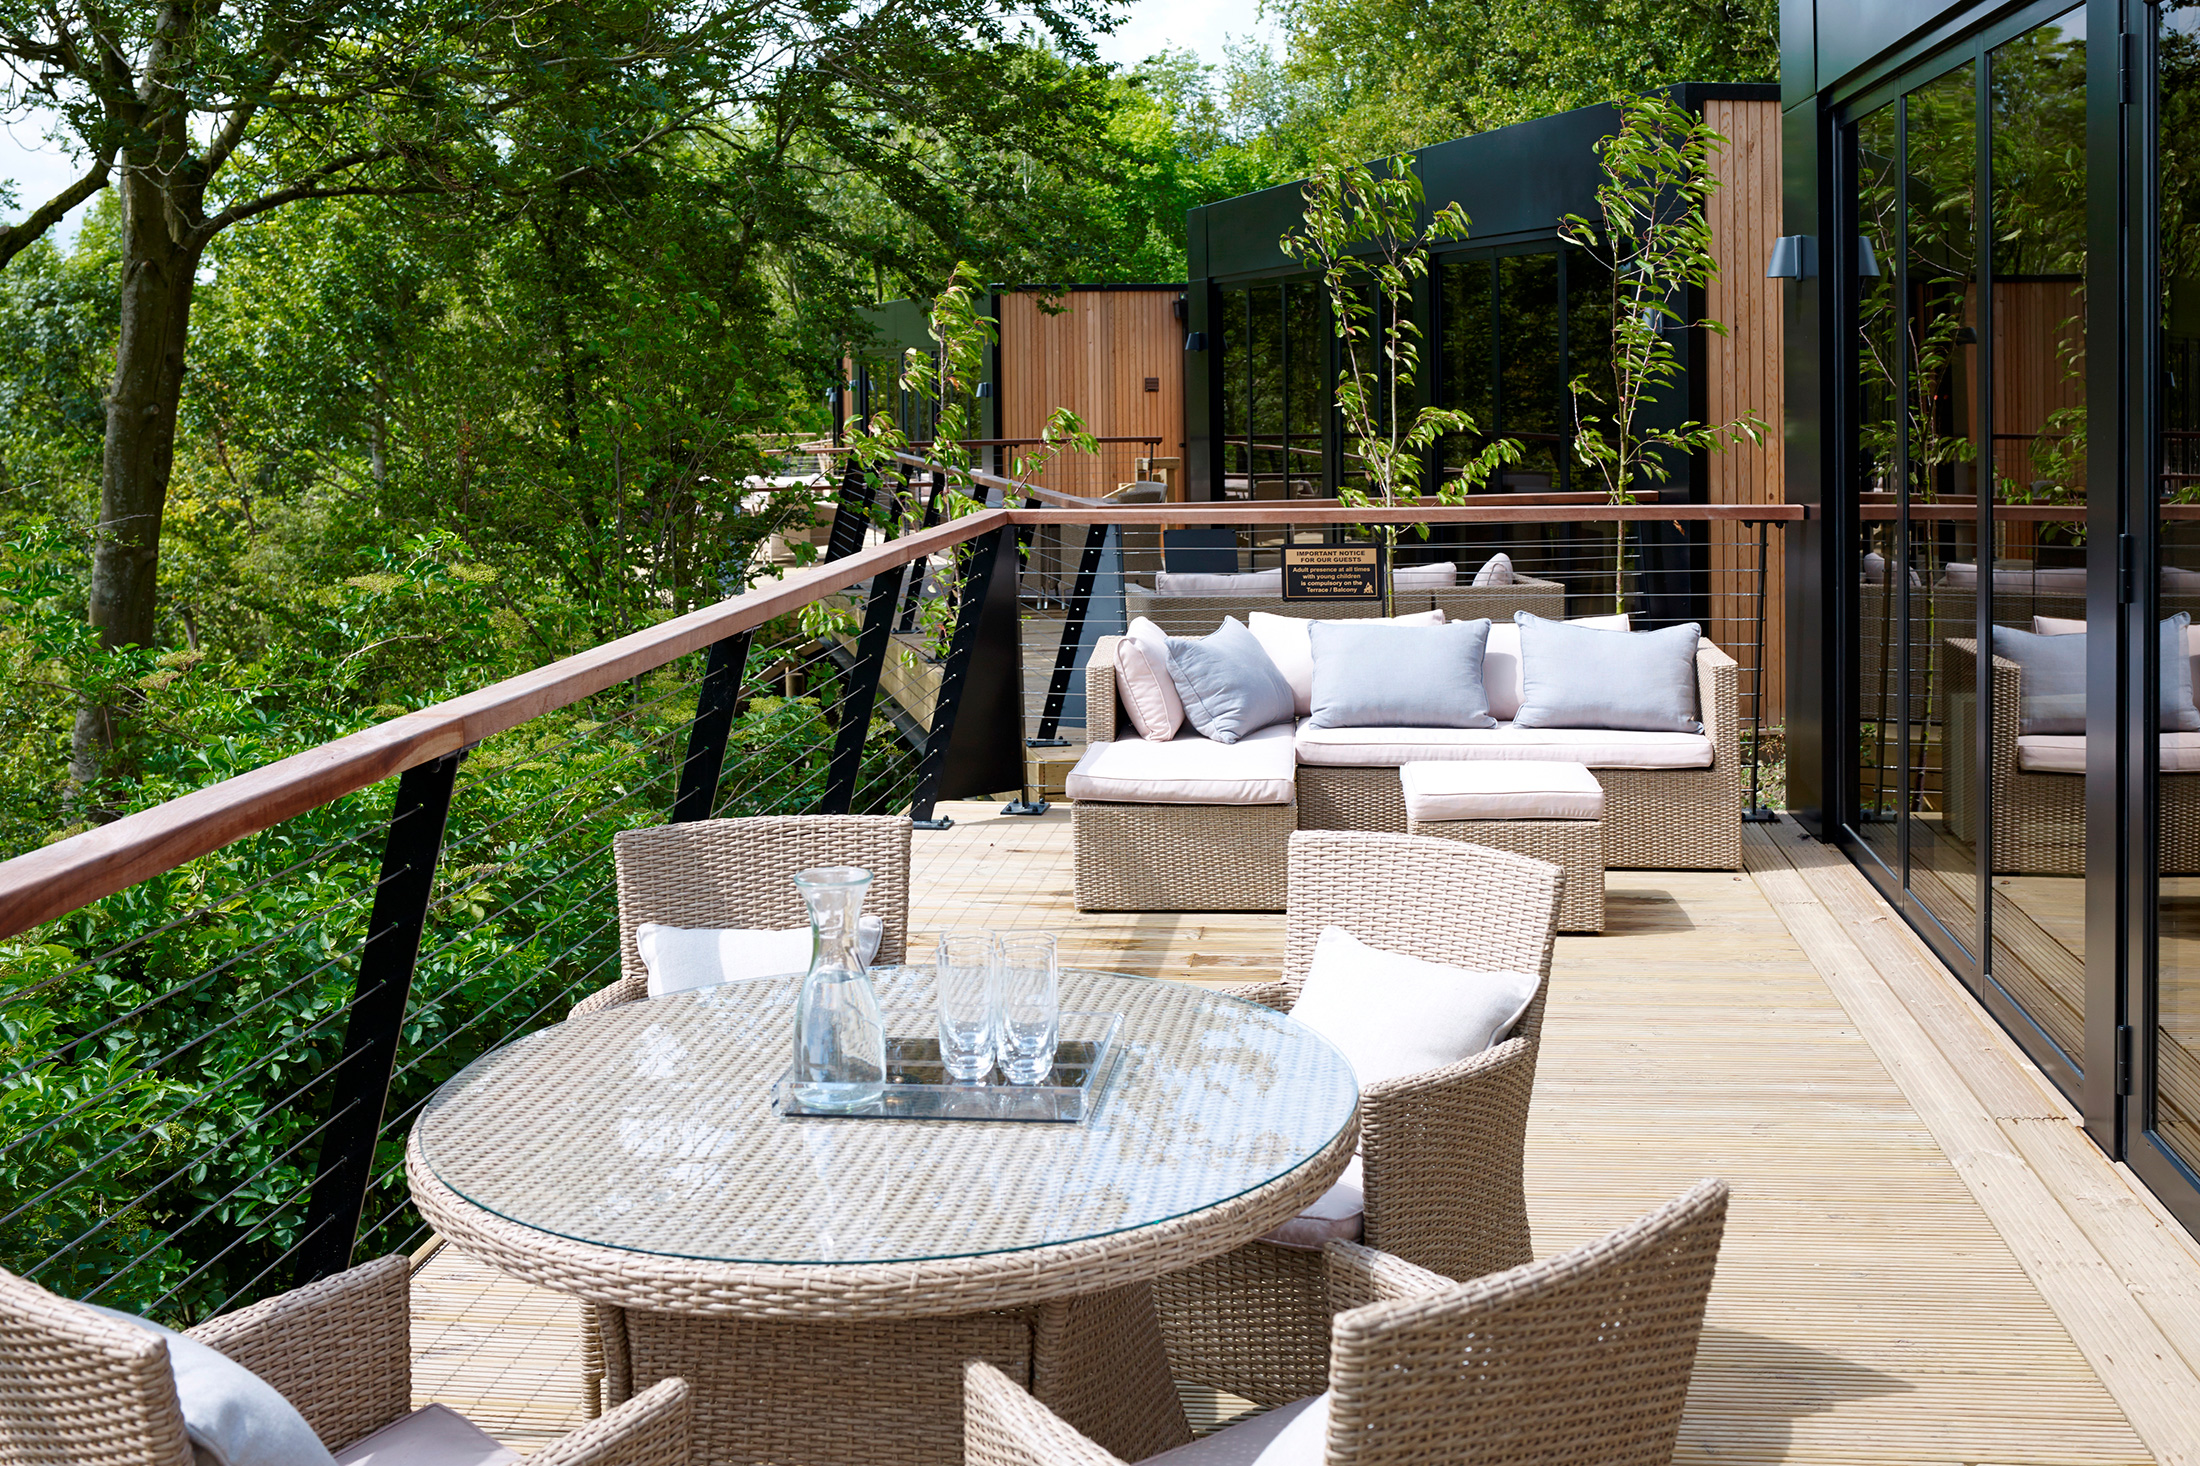 The Treehouse Hotel, located above the Port Lympne Reserve in Kent. (Photo: Courtesy Treehouse Hotel)